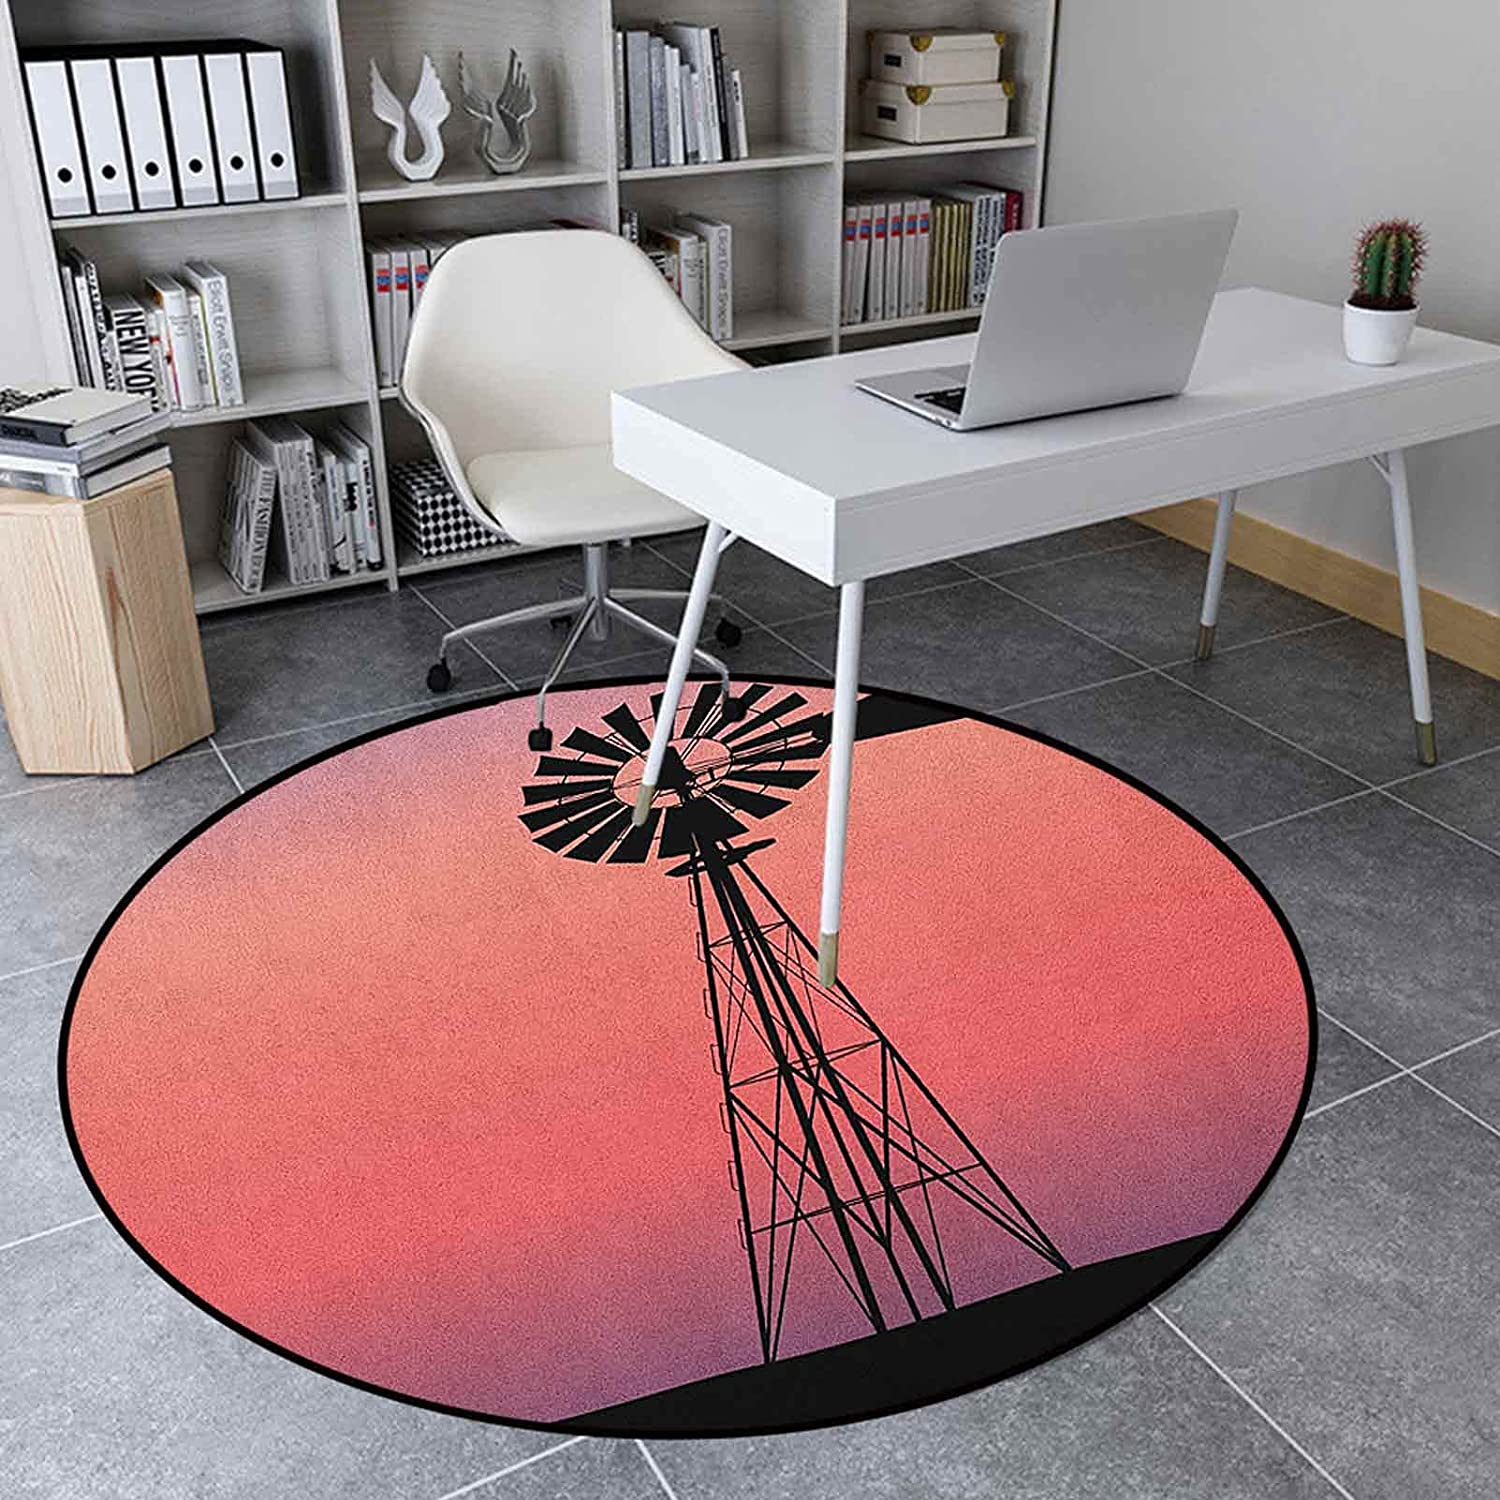 Windmill Round Rugs for Bedroom Floor Indoor Mat 4.9' New product Albuquerque Mall type